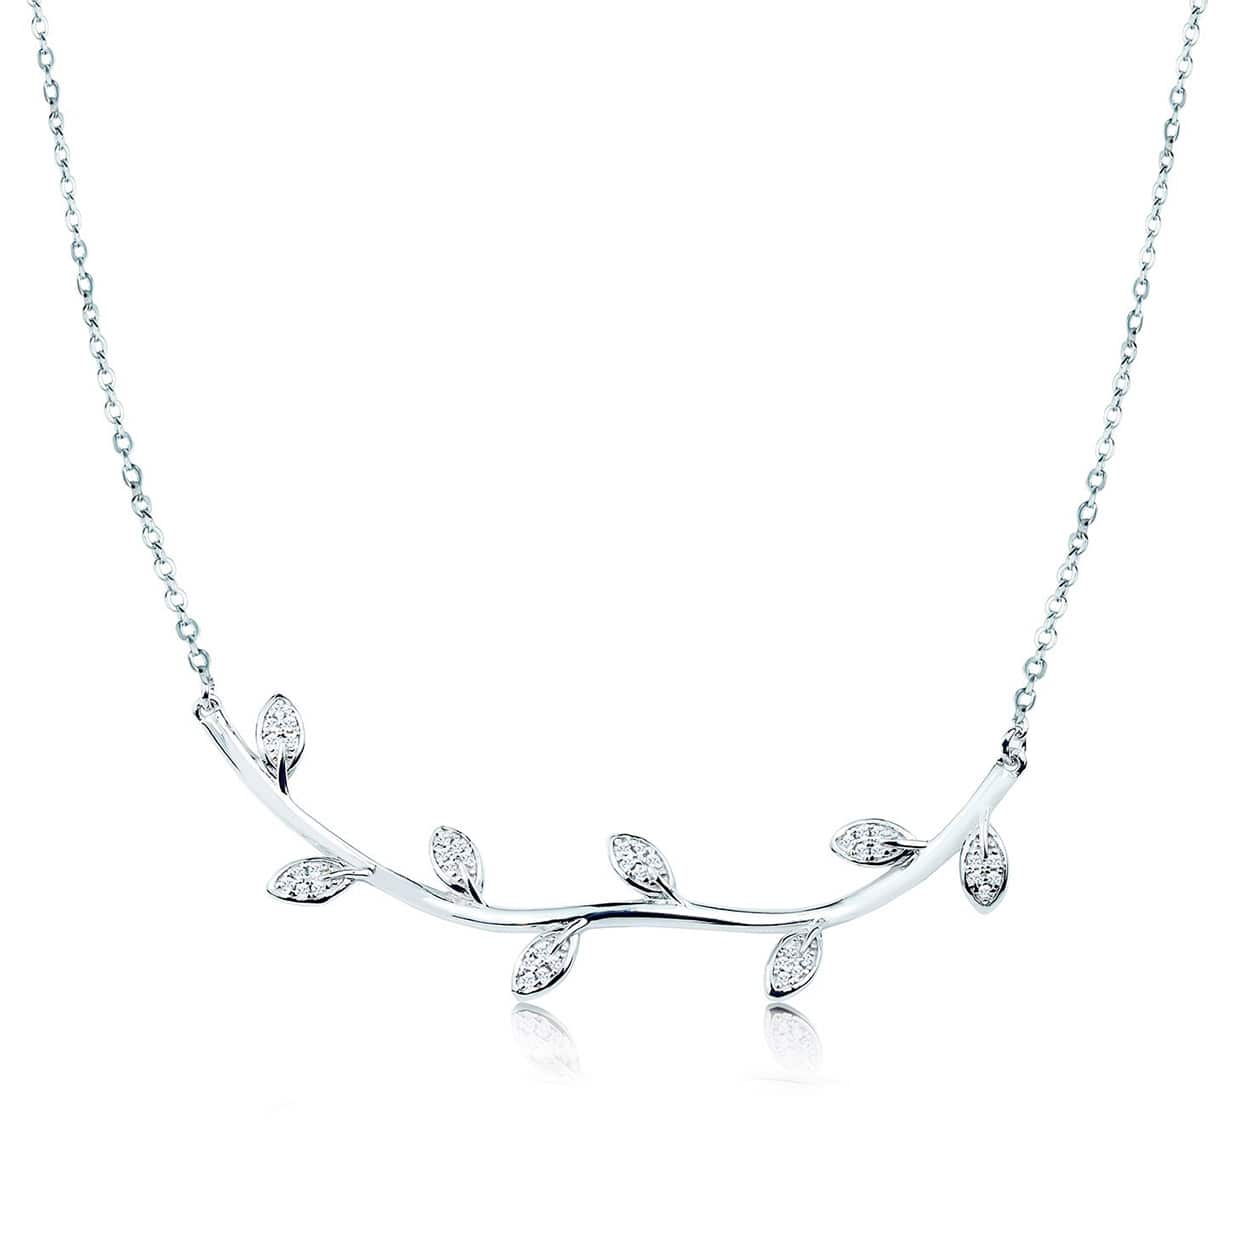 Flora Silver Leaf Necklace - Abelstedt